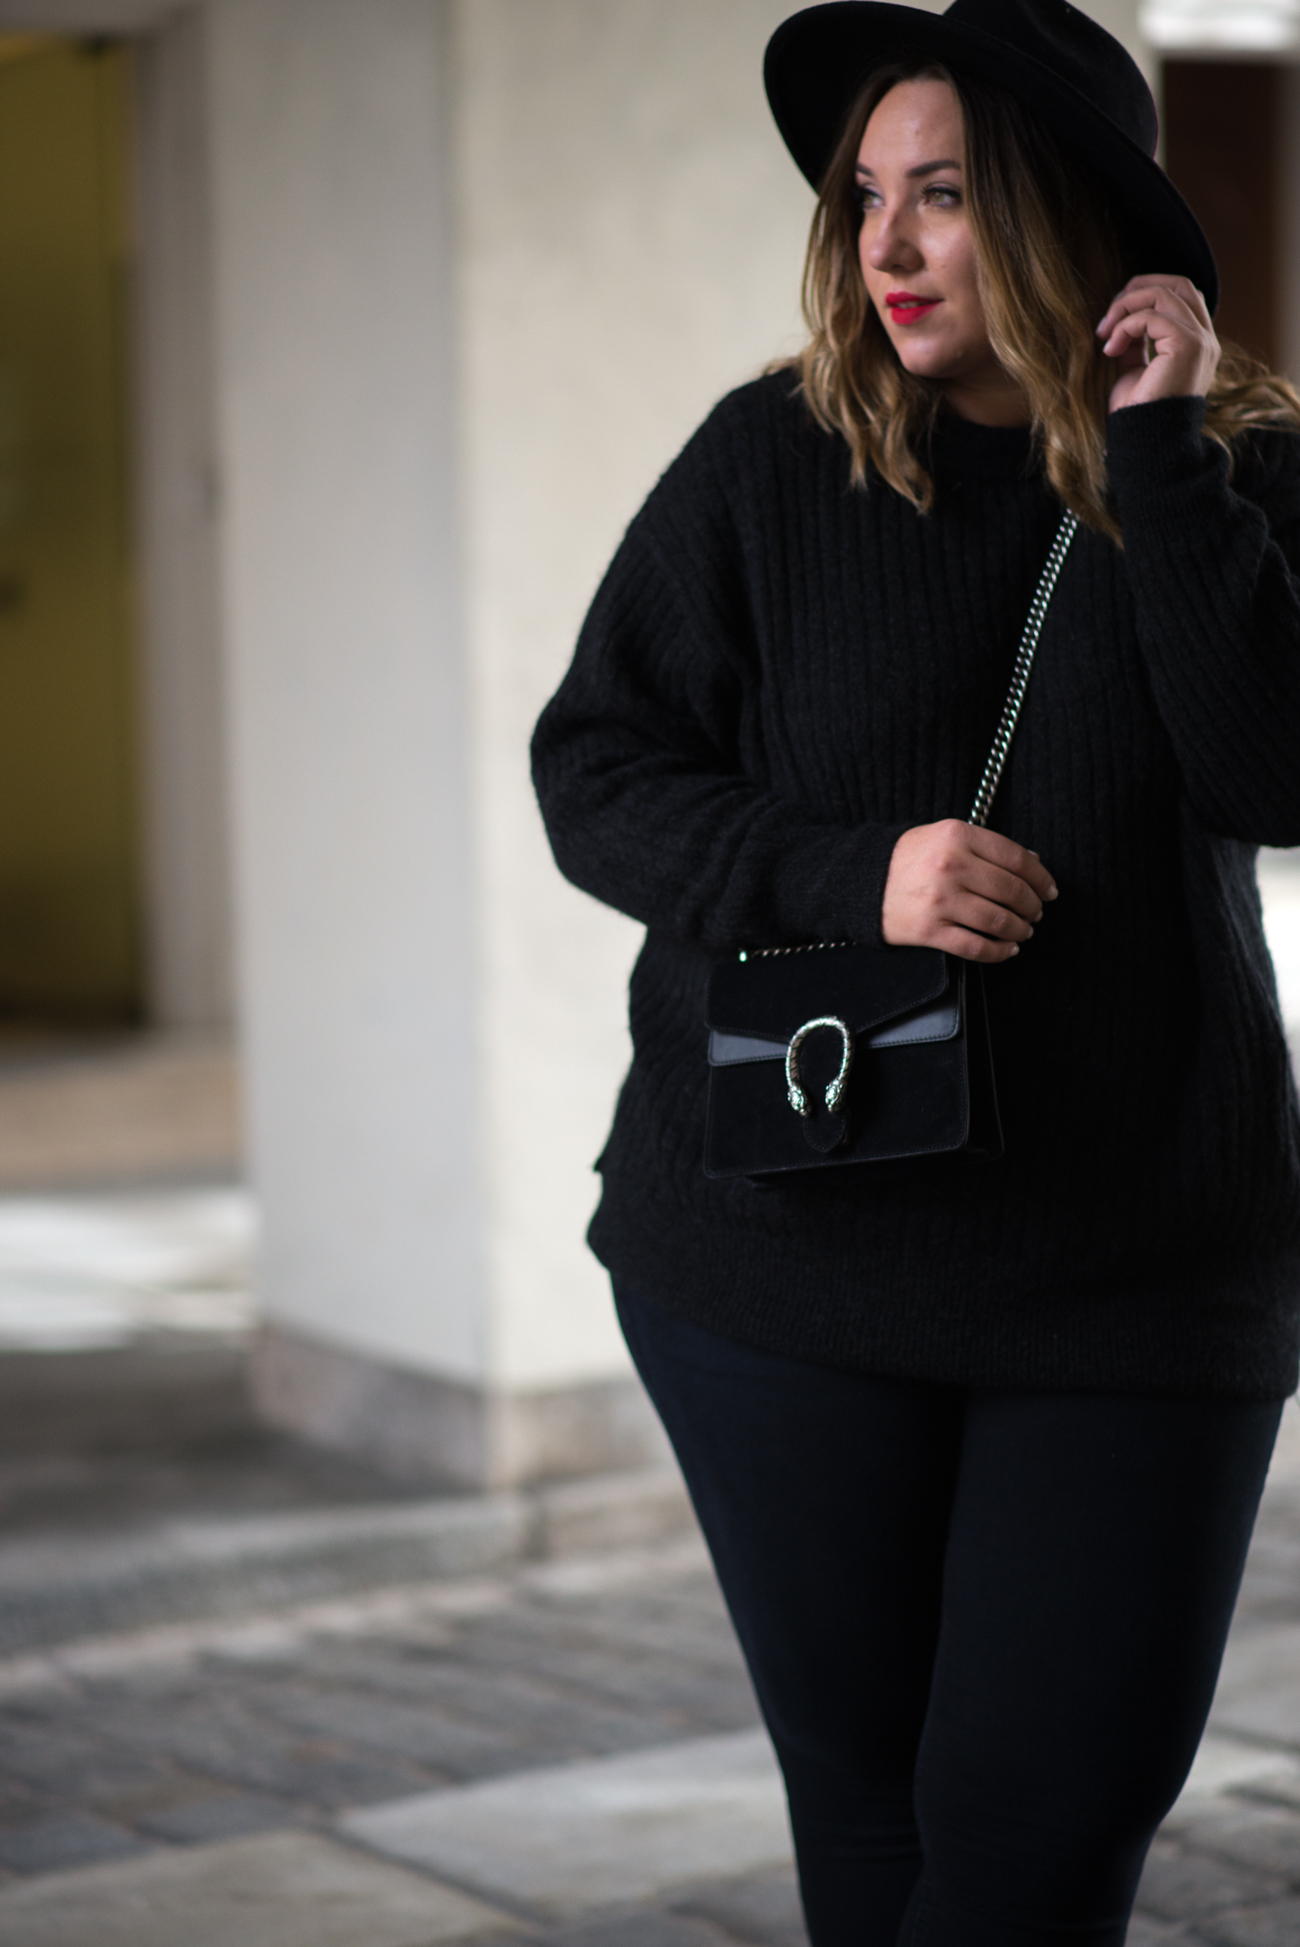 the-skinny-and-the-curvy-one_ms-wunderbar_curvy_plussize-blogger_plus-size-blog-deutschland_curve-blogger_all-black_gucci-dionysus_gucci-dionysus-black-velour-23-von-27